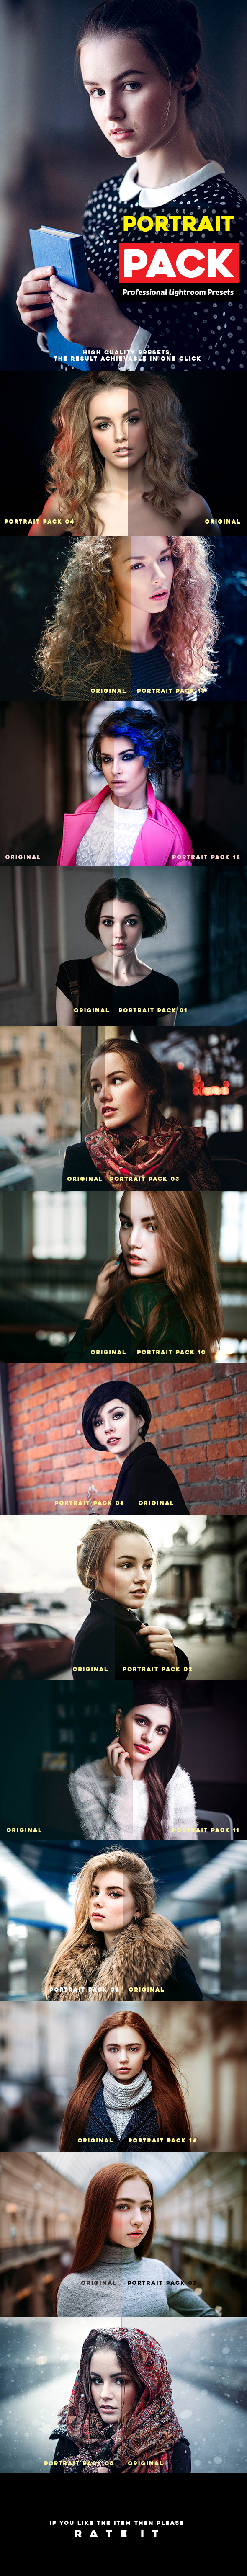 Portrait Pack 14 Professional Lightroom Presets by h_s | GraphicRiver